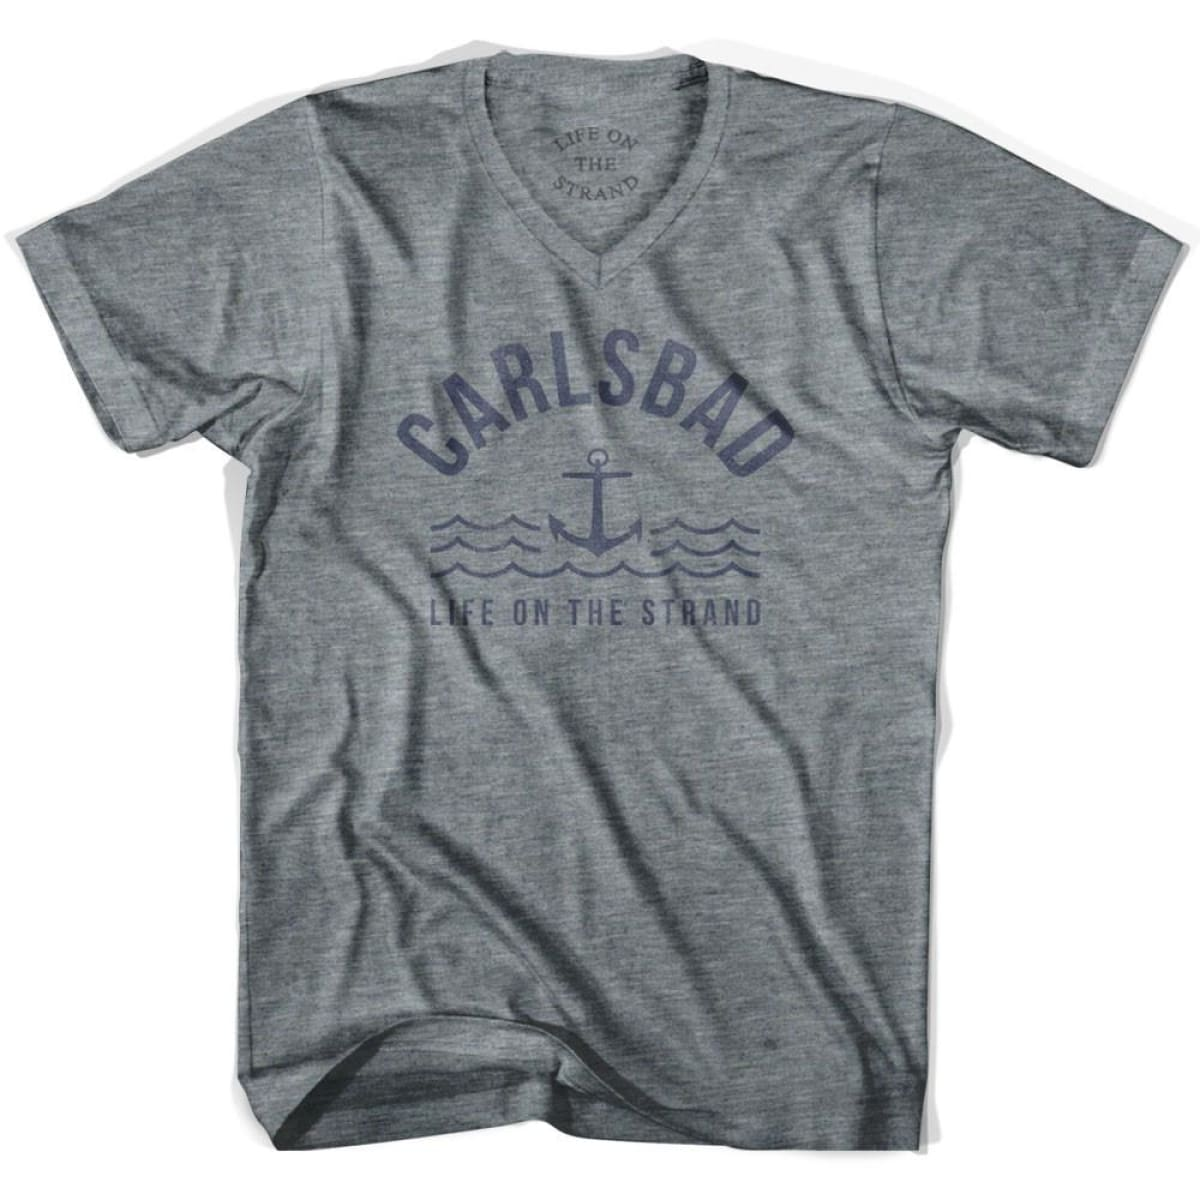 Carlsbad Anchor Life on the Strand V-neck T-shirt - Athletic Grey / Adult X-Small - Life on the Strand Anchor